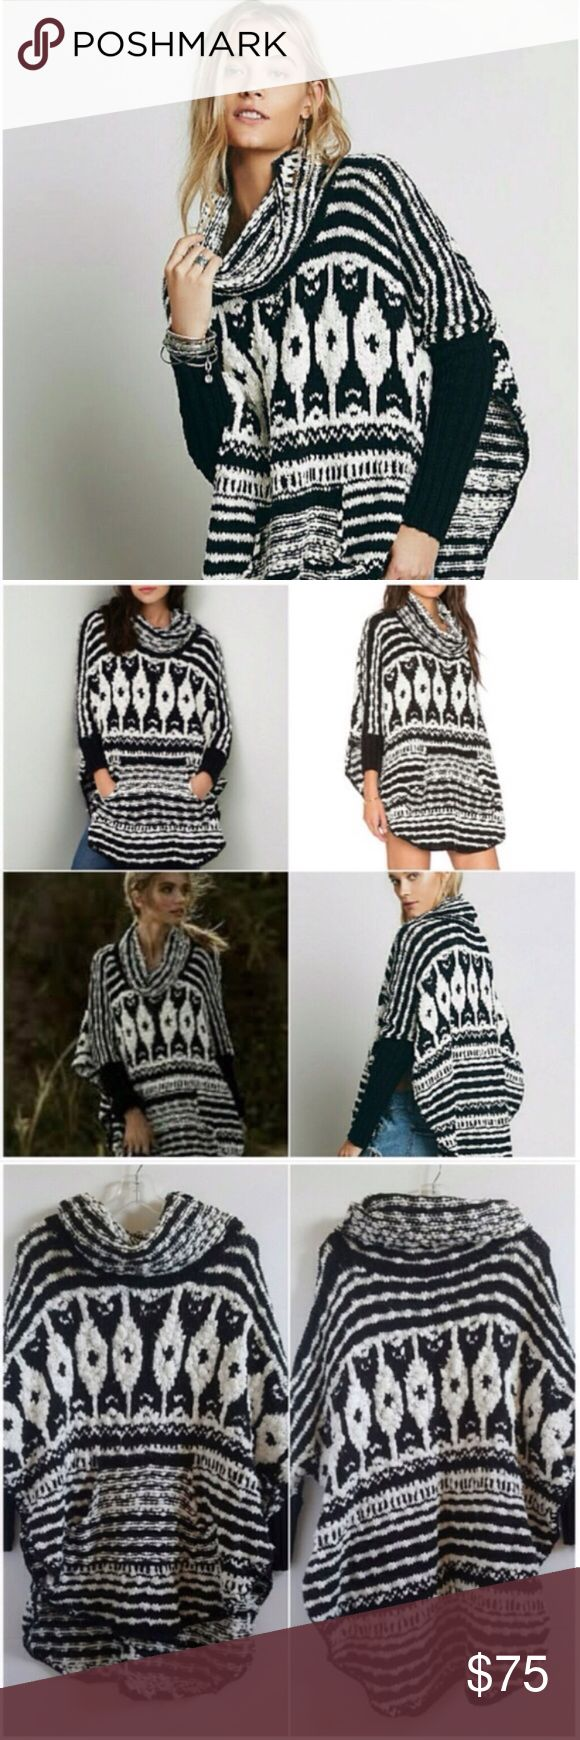 Free People chunky knit black and white poncho Free People chunky knit black and white poncho. Size small. Oversized and cozy!                                                   -Cowl neck     -kangaroo pocket     -Long knit arms         -approx 30in length     -93% cotton, 7% rayon     -Dry Clean                   *Like new, only worn a couple times* Free People Sweaters Shrugs & Ponchos